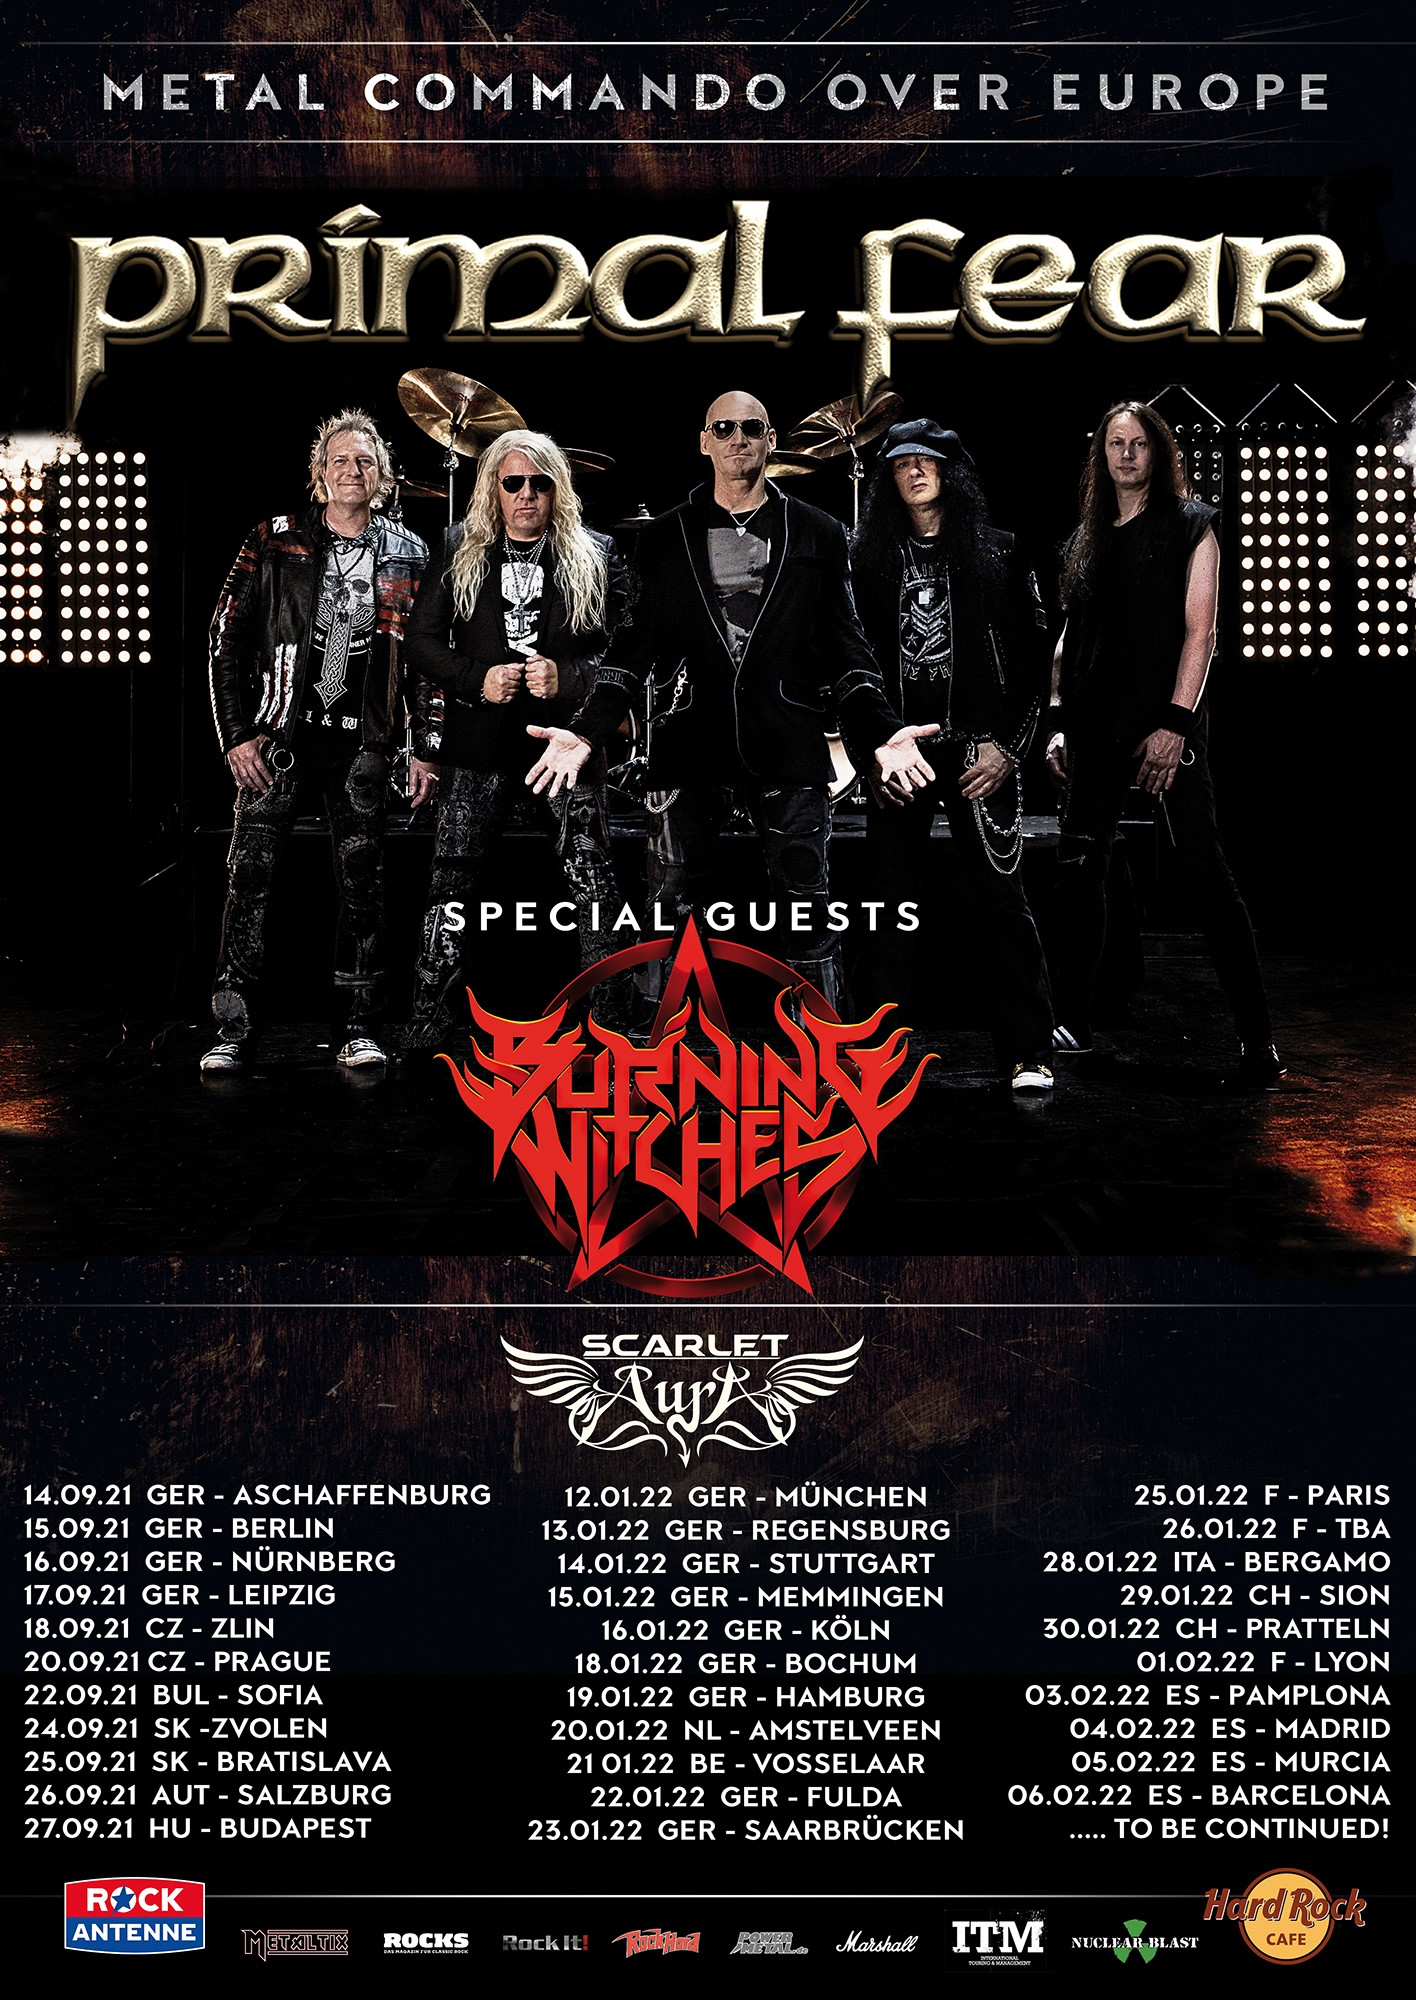 Primal Fear - Metal Commando Over Europe 2021/2022